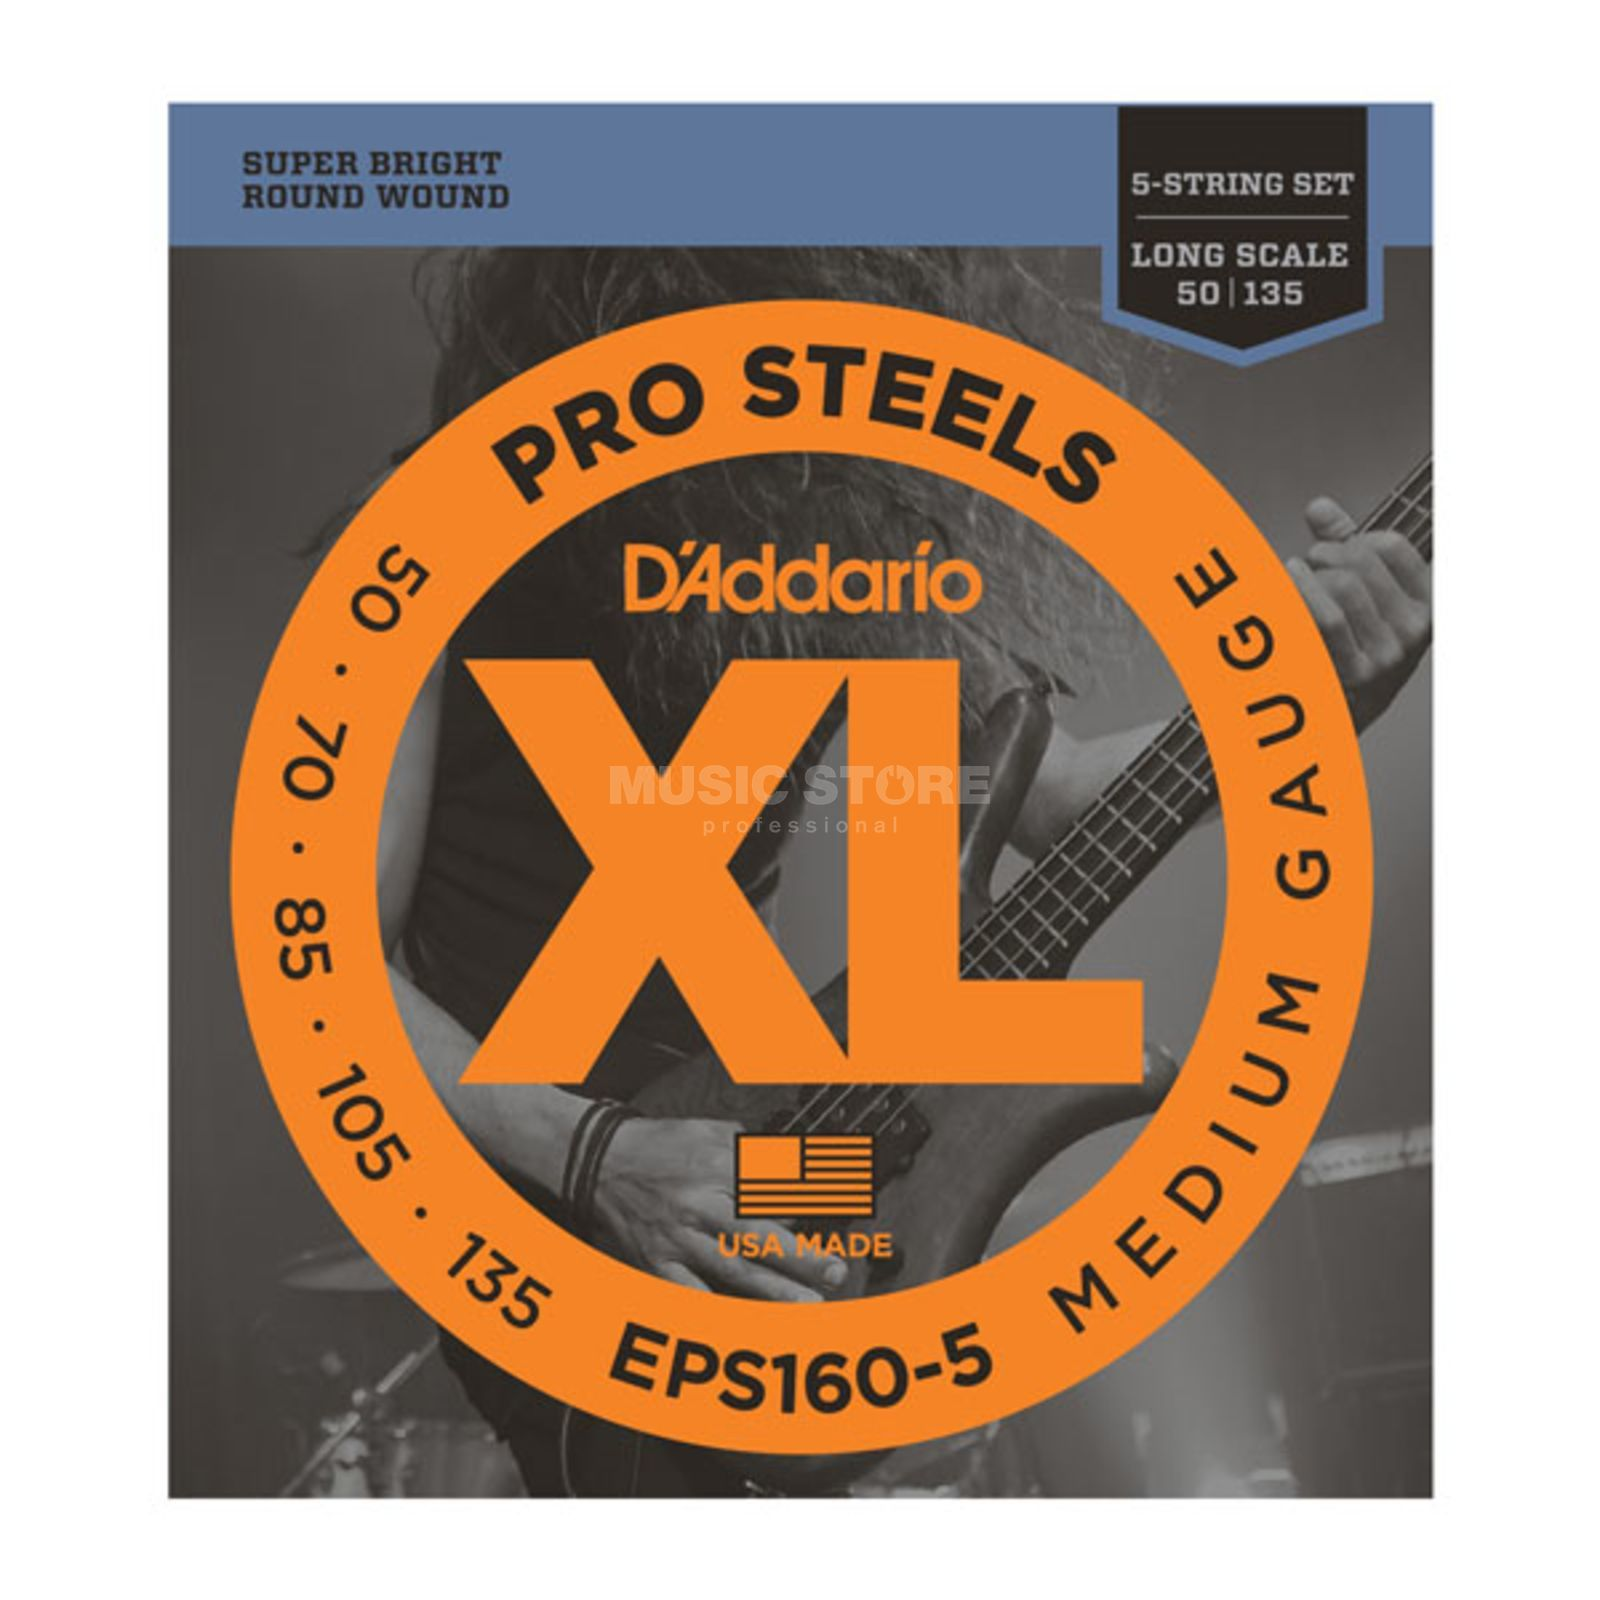 D'Addario Bass Strings Pro Steels 50-135 50-70-85-105-135, EPS160-5 Produktbillede